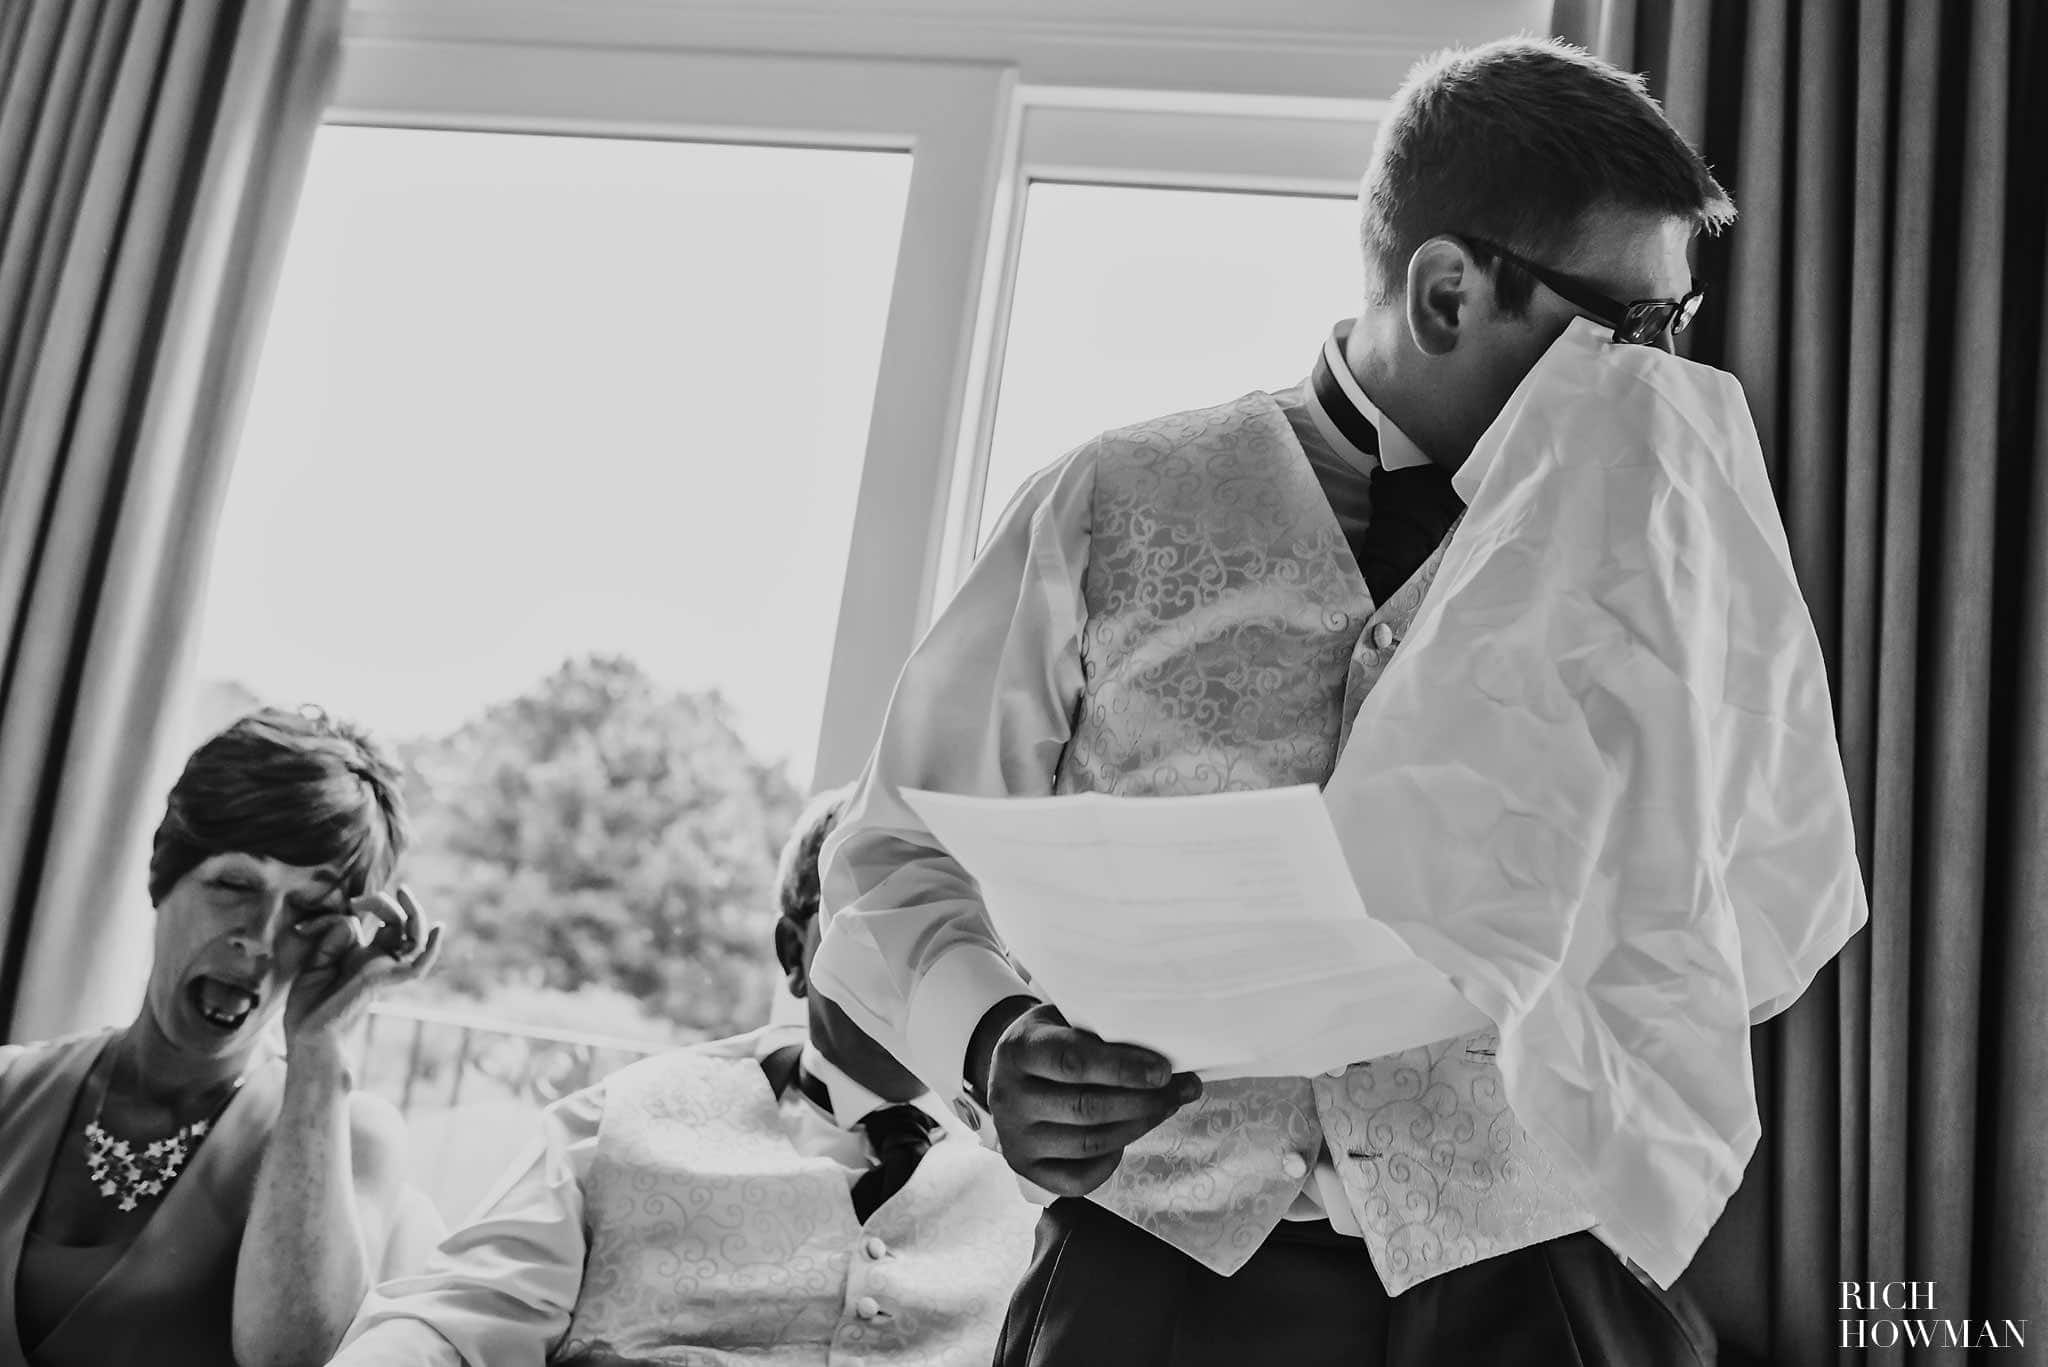 Groom crying during the speeches at his wedding at the Centurion Hotel in Radstock, near Bath